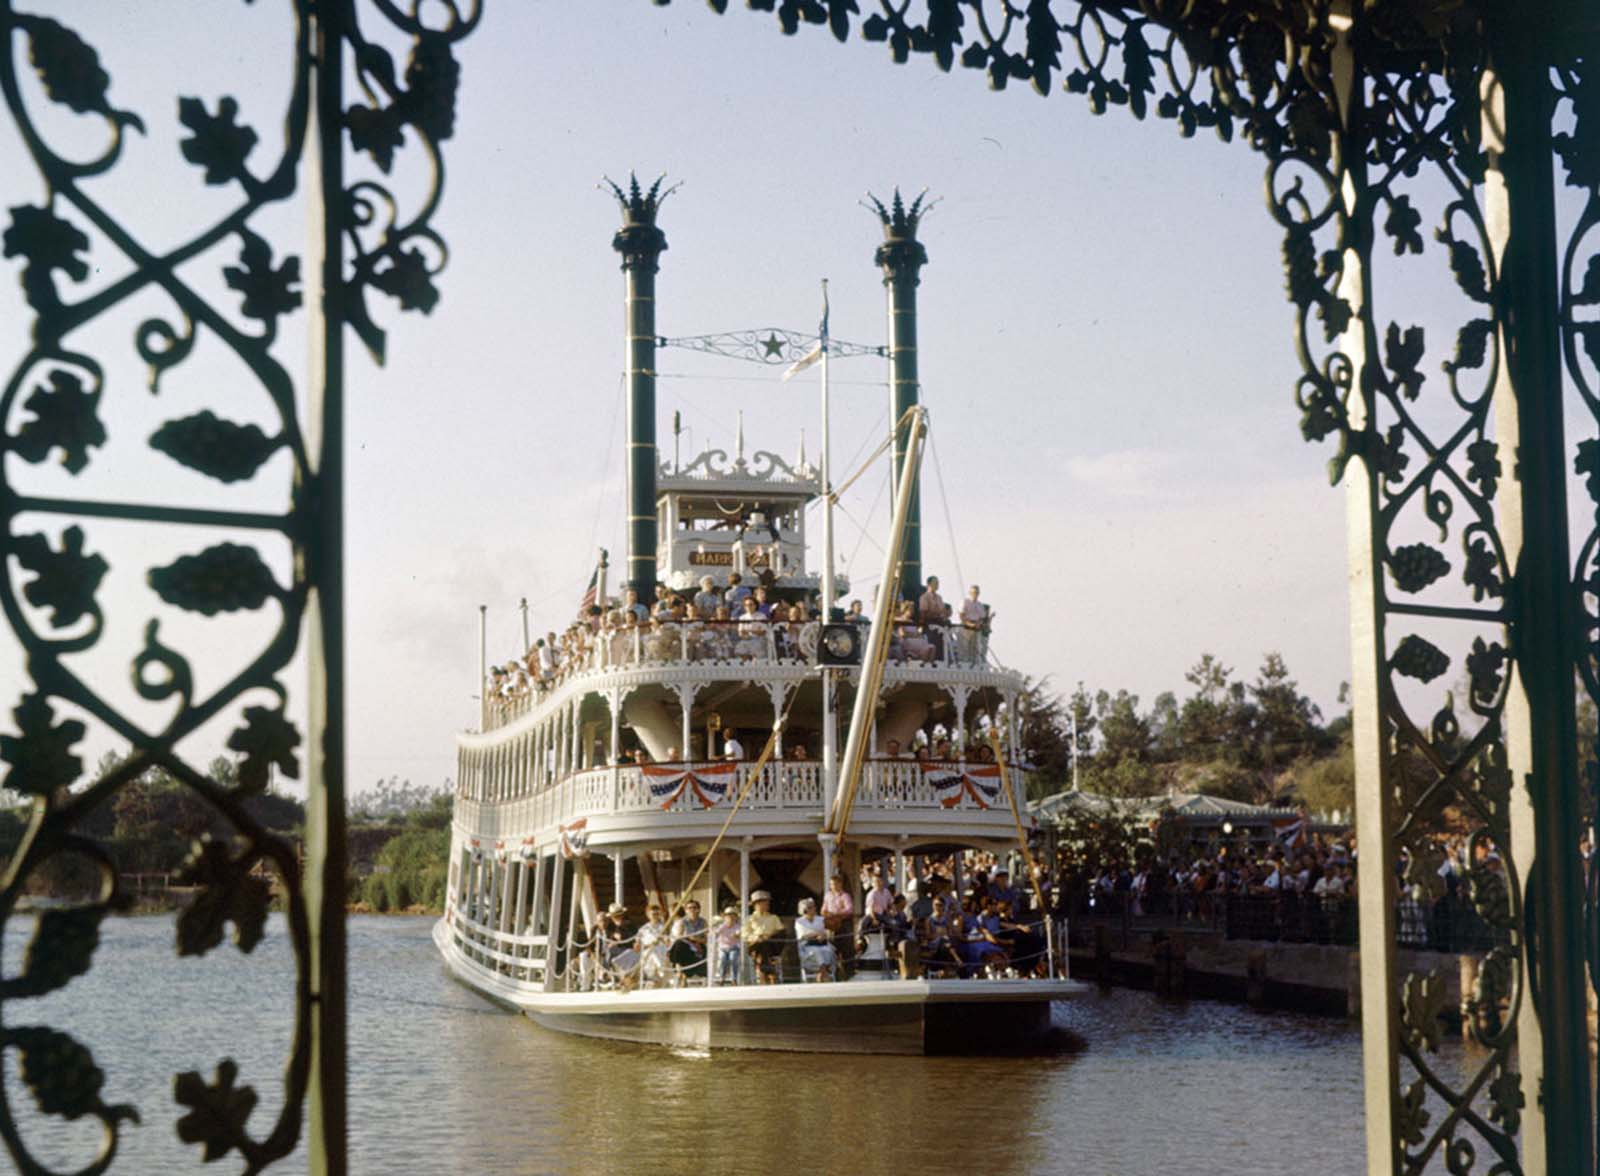 A crowded Mark Twain Riverboat sails at Disneyland in July 1955.